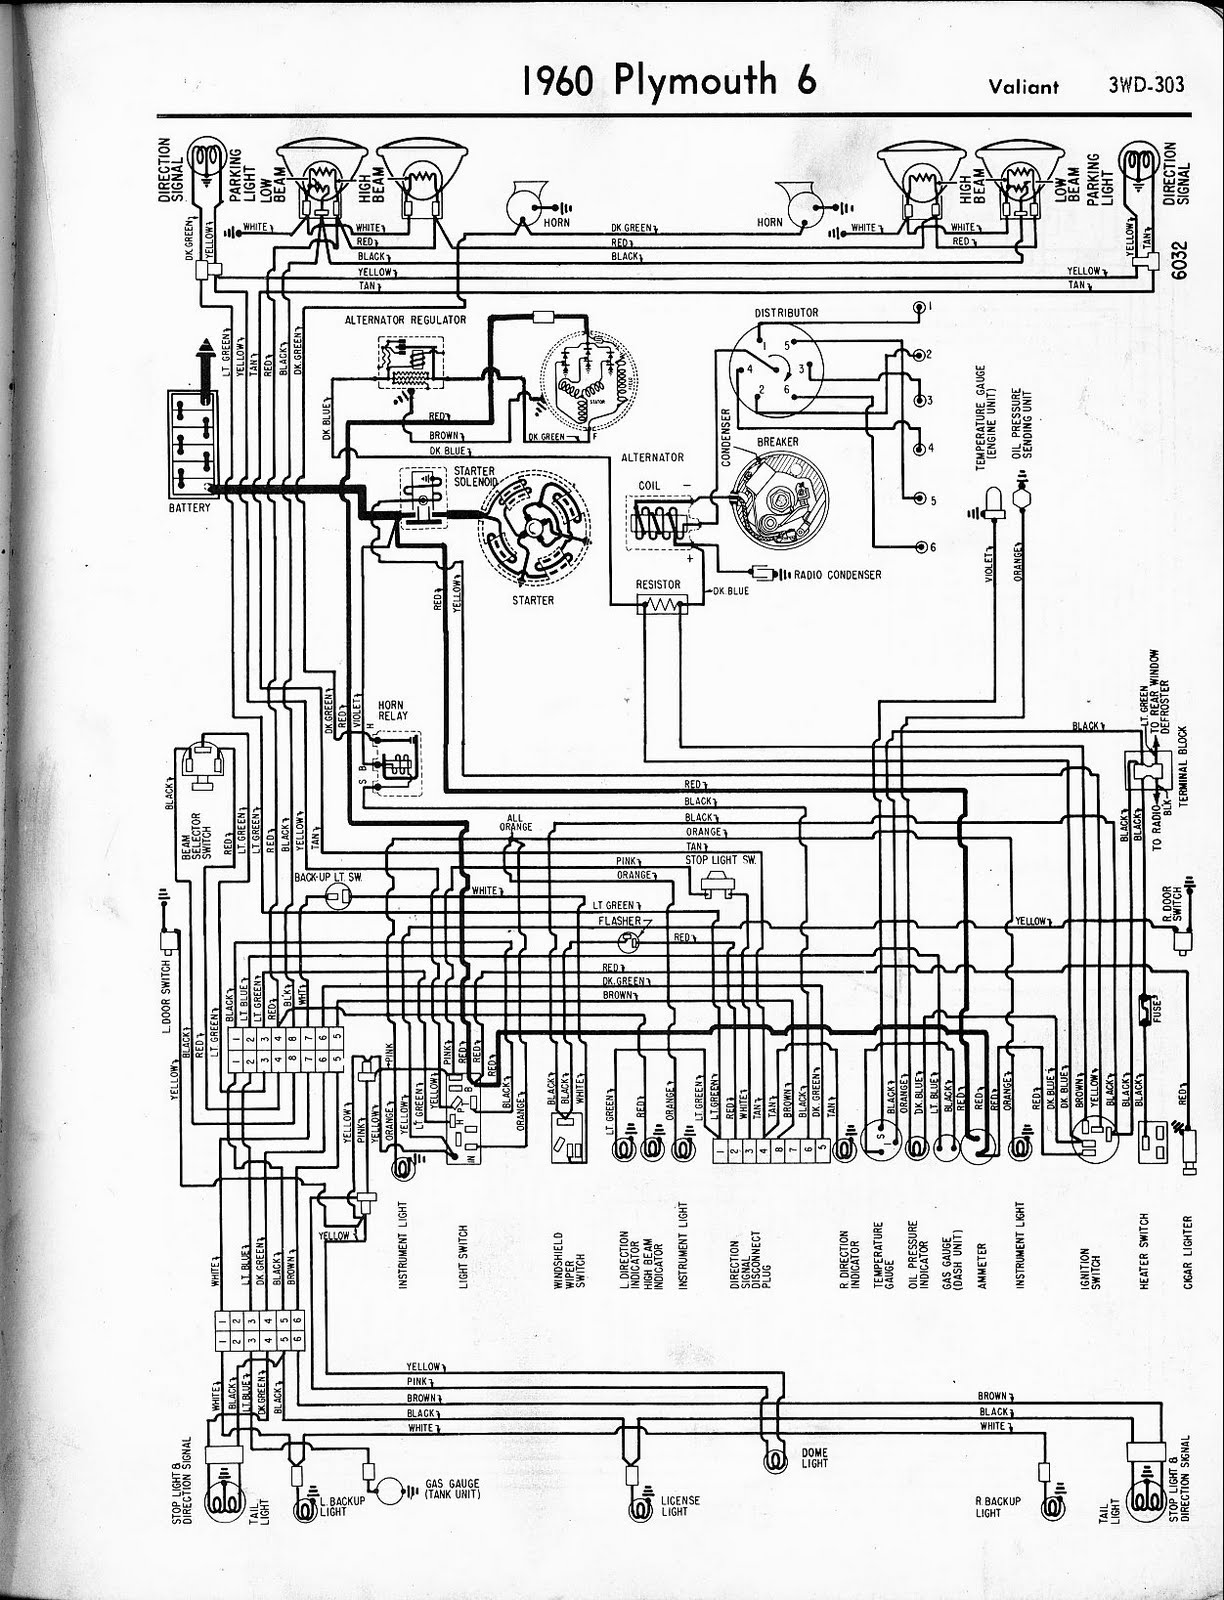 1954 plymouth wiring diagram wiring diagram view 56 plymouth wiring diagram [ 1224 x 1600 Pixel ]